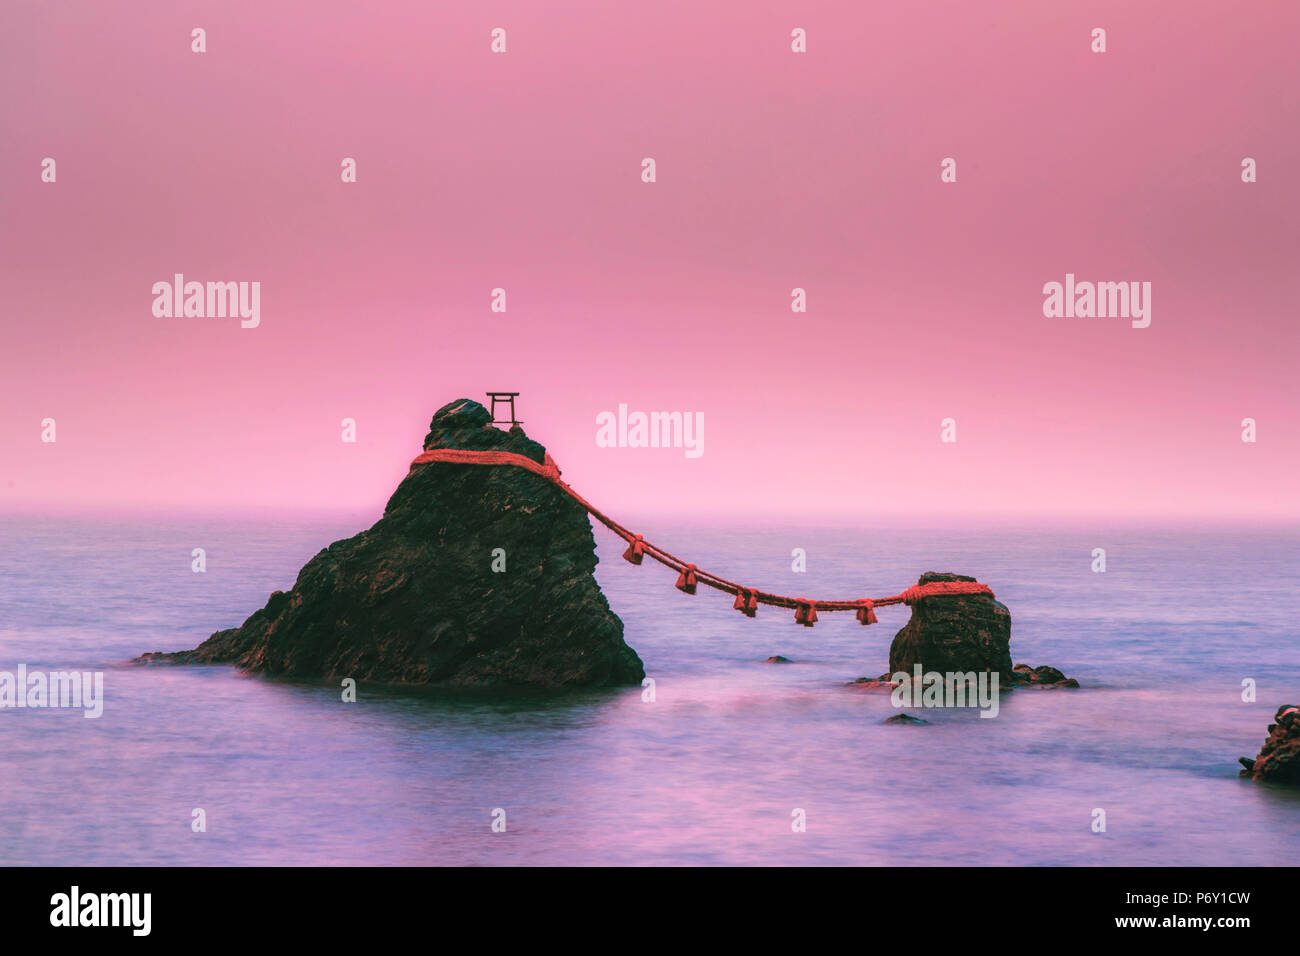 Japan, Mie Prefecture, Futami, Meoto-Iwa (Wedded Rocks)  just offshore from Okiyama Shrine, revered as representations of Izanagi and Izanami, the two gods who created Japan. - Stock Image